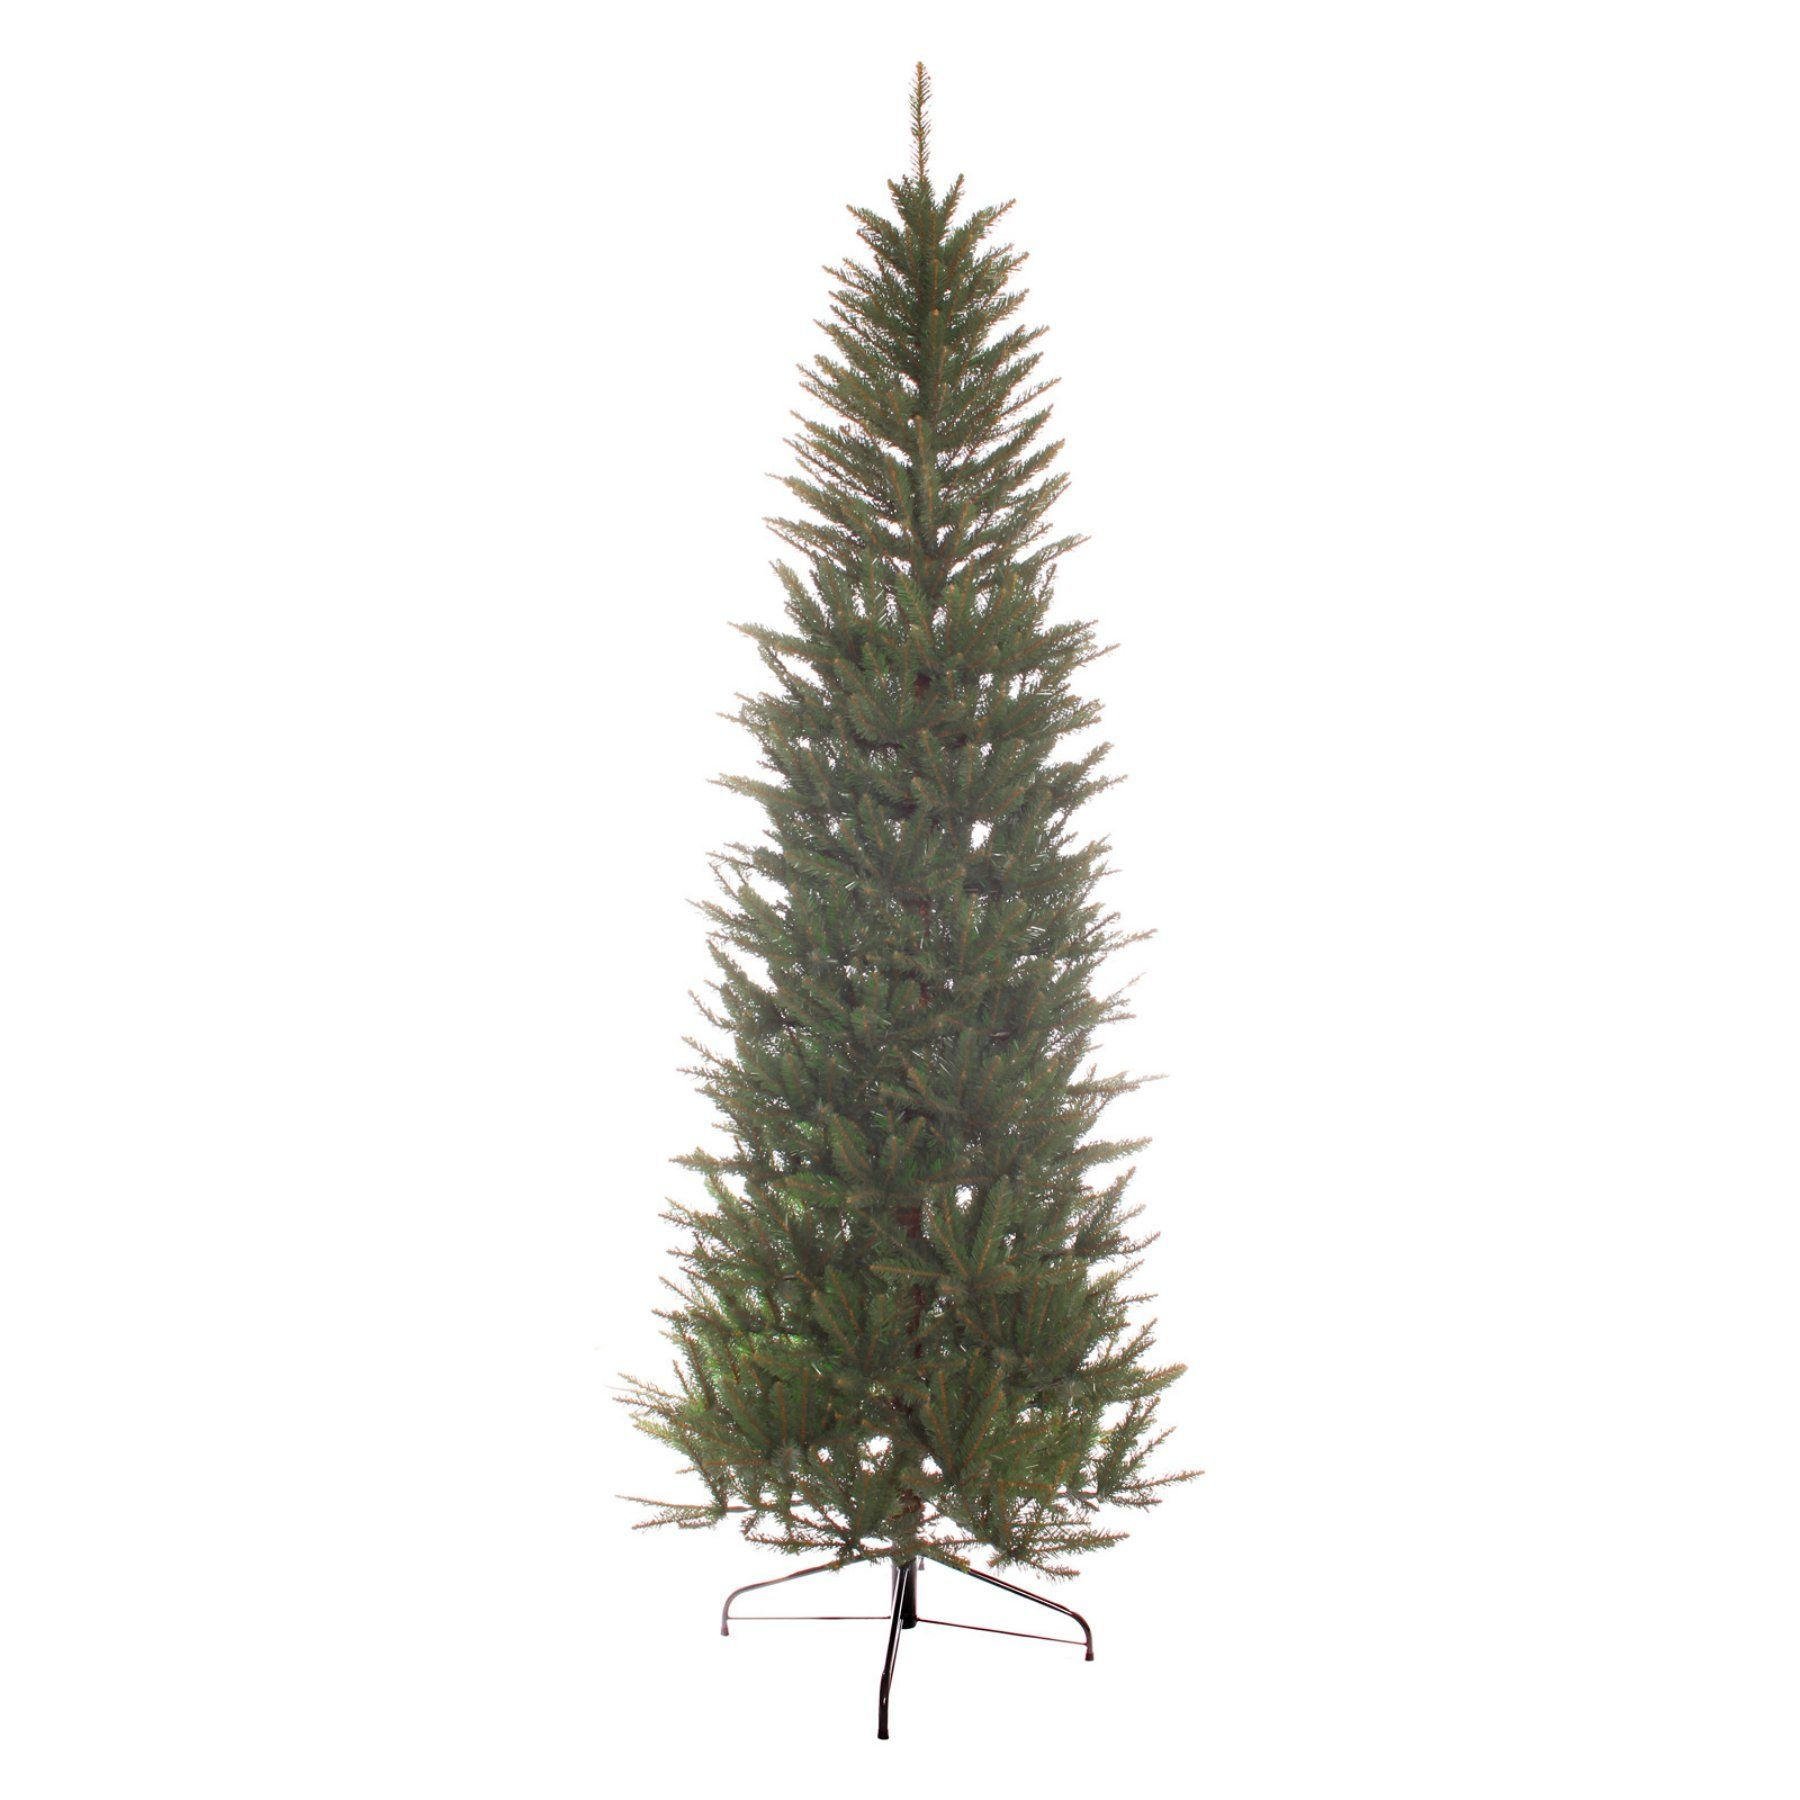 puleo international 75 ft fraser fir unlit slim christmas tree 277 ffsl - 75 Ft Slim Christmas Tree